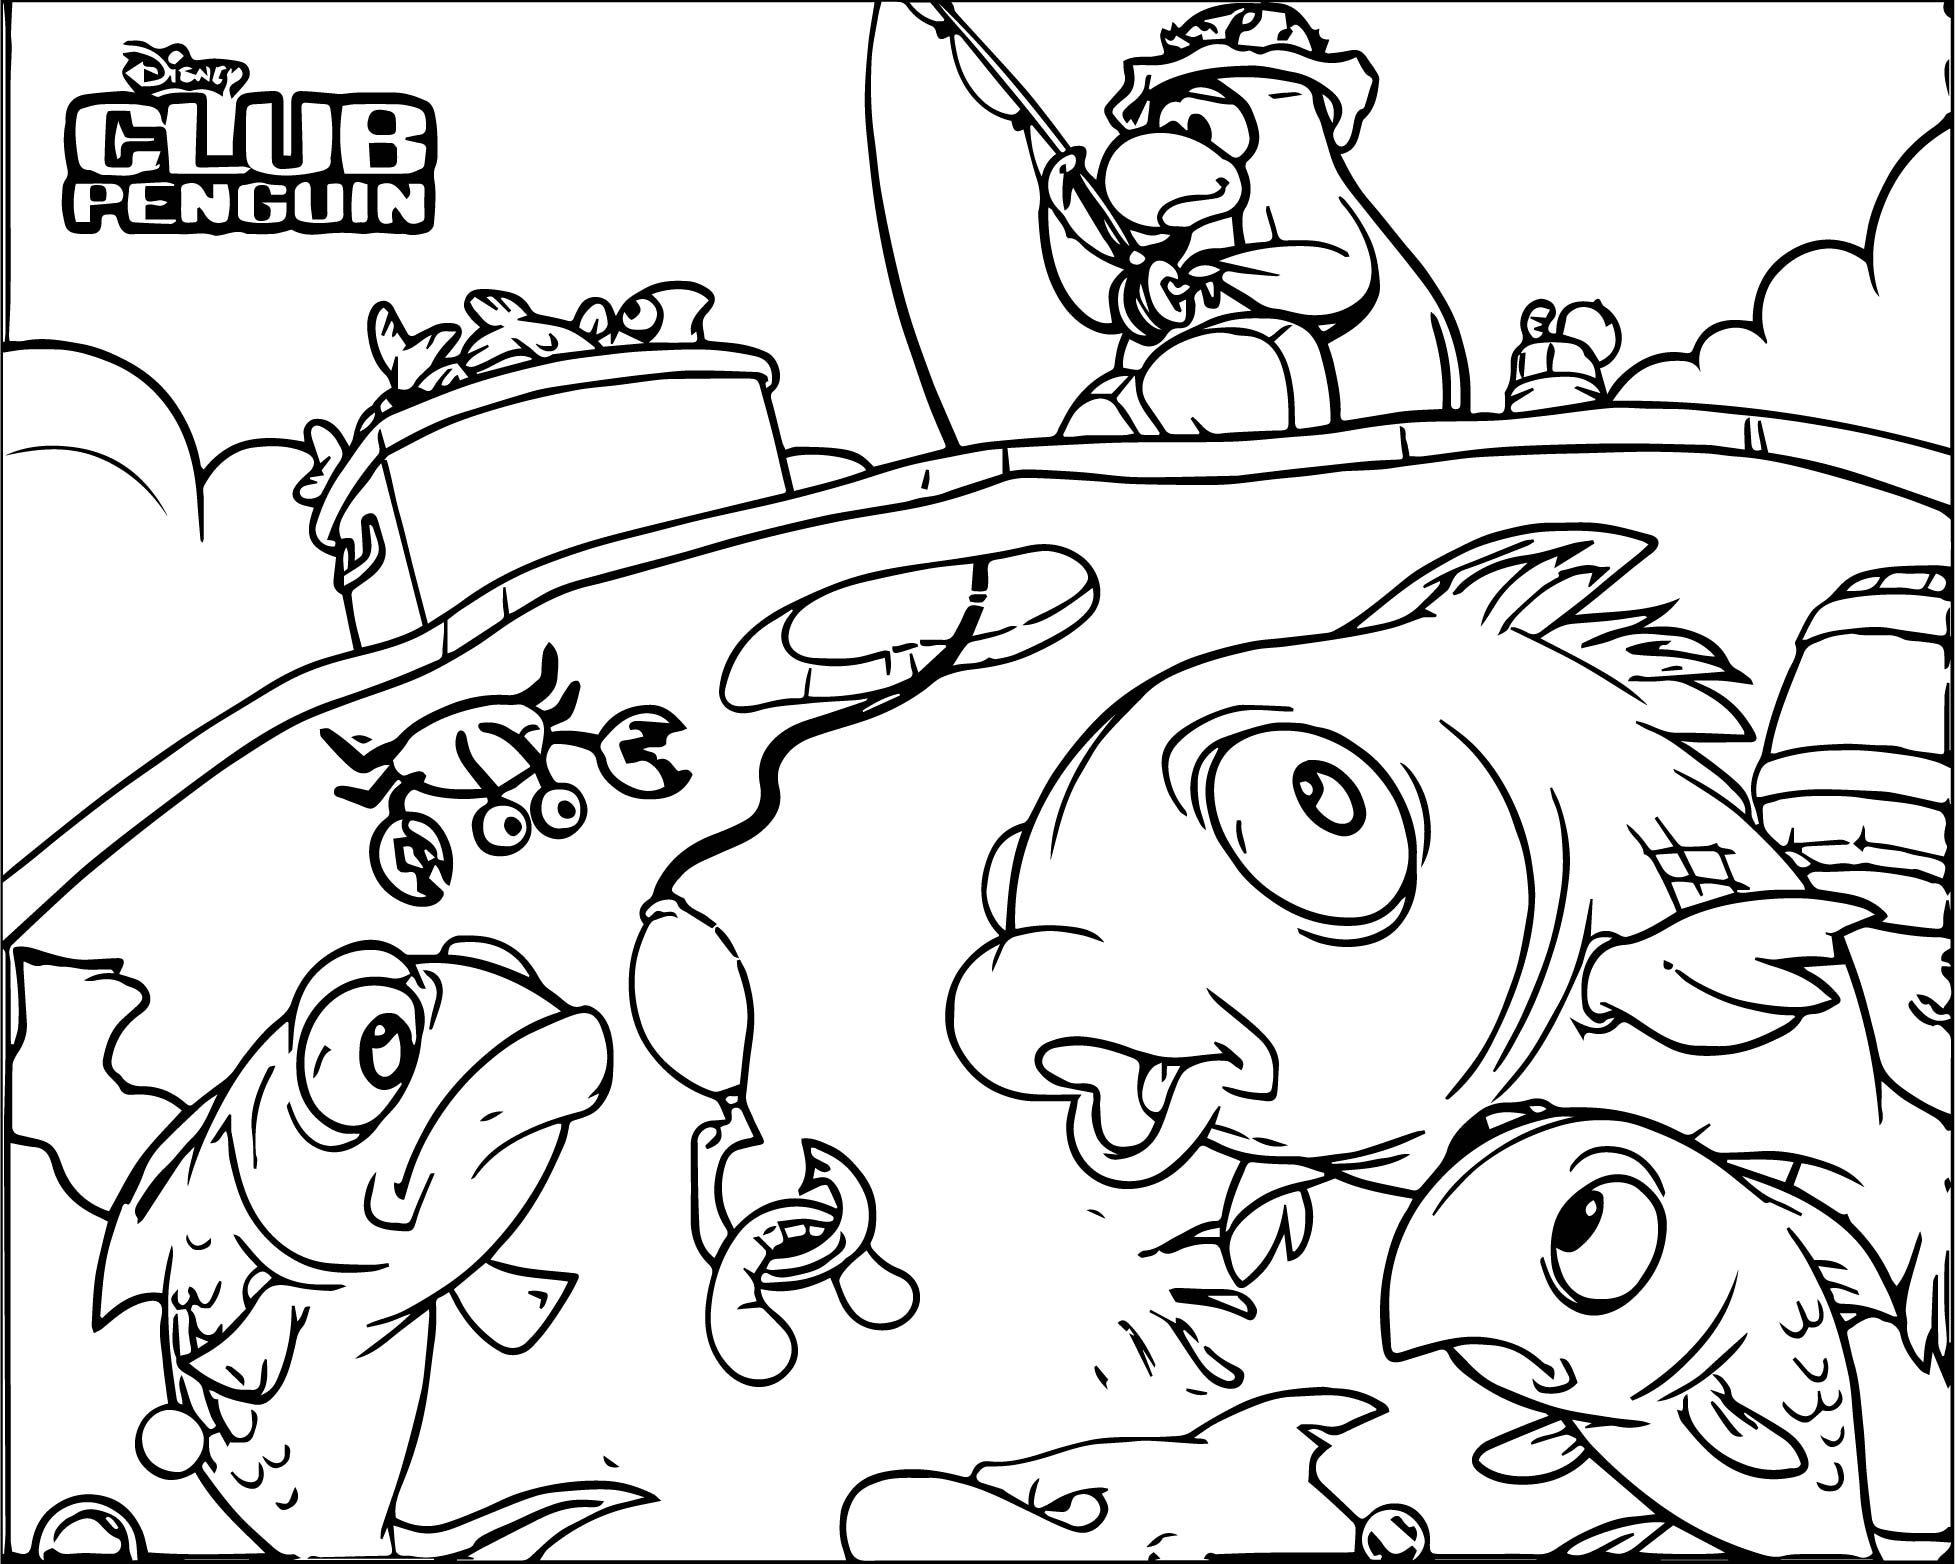 Club Penguin Mermaid Coloring Pages